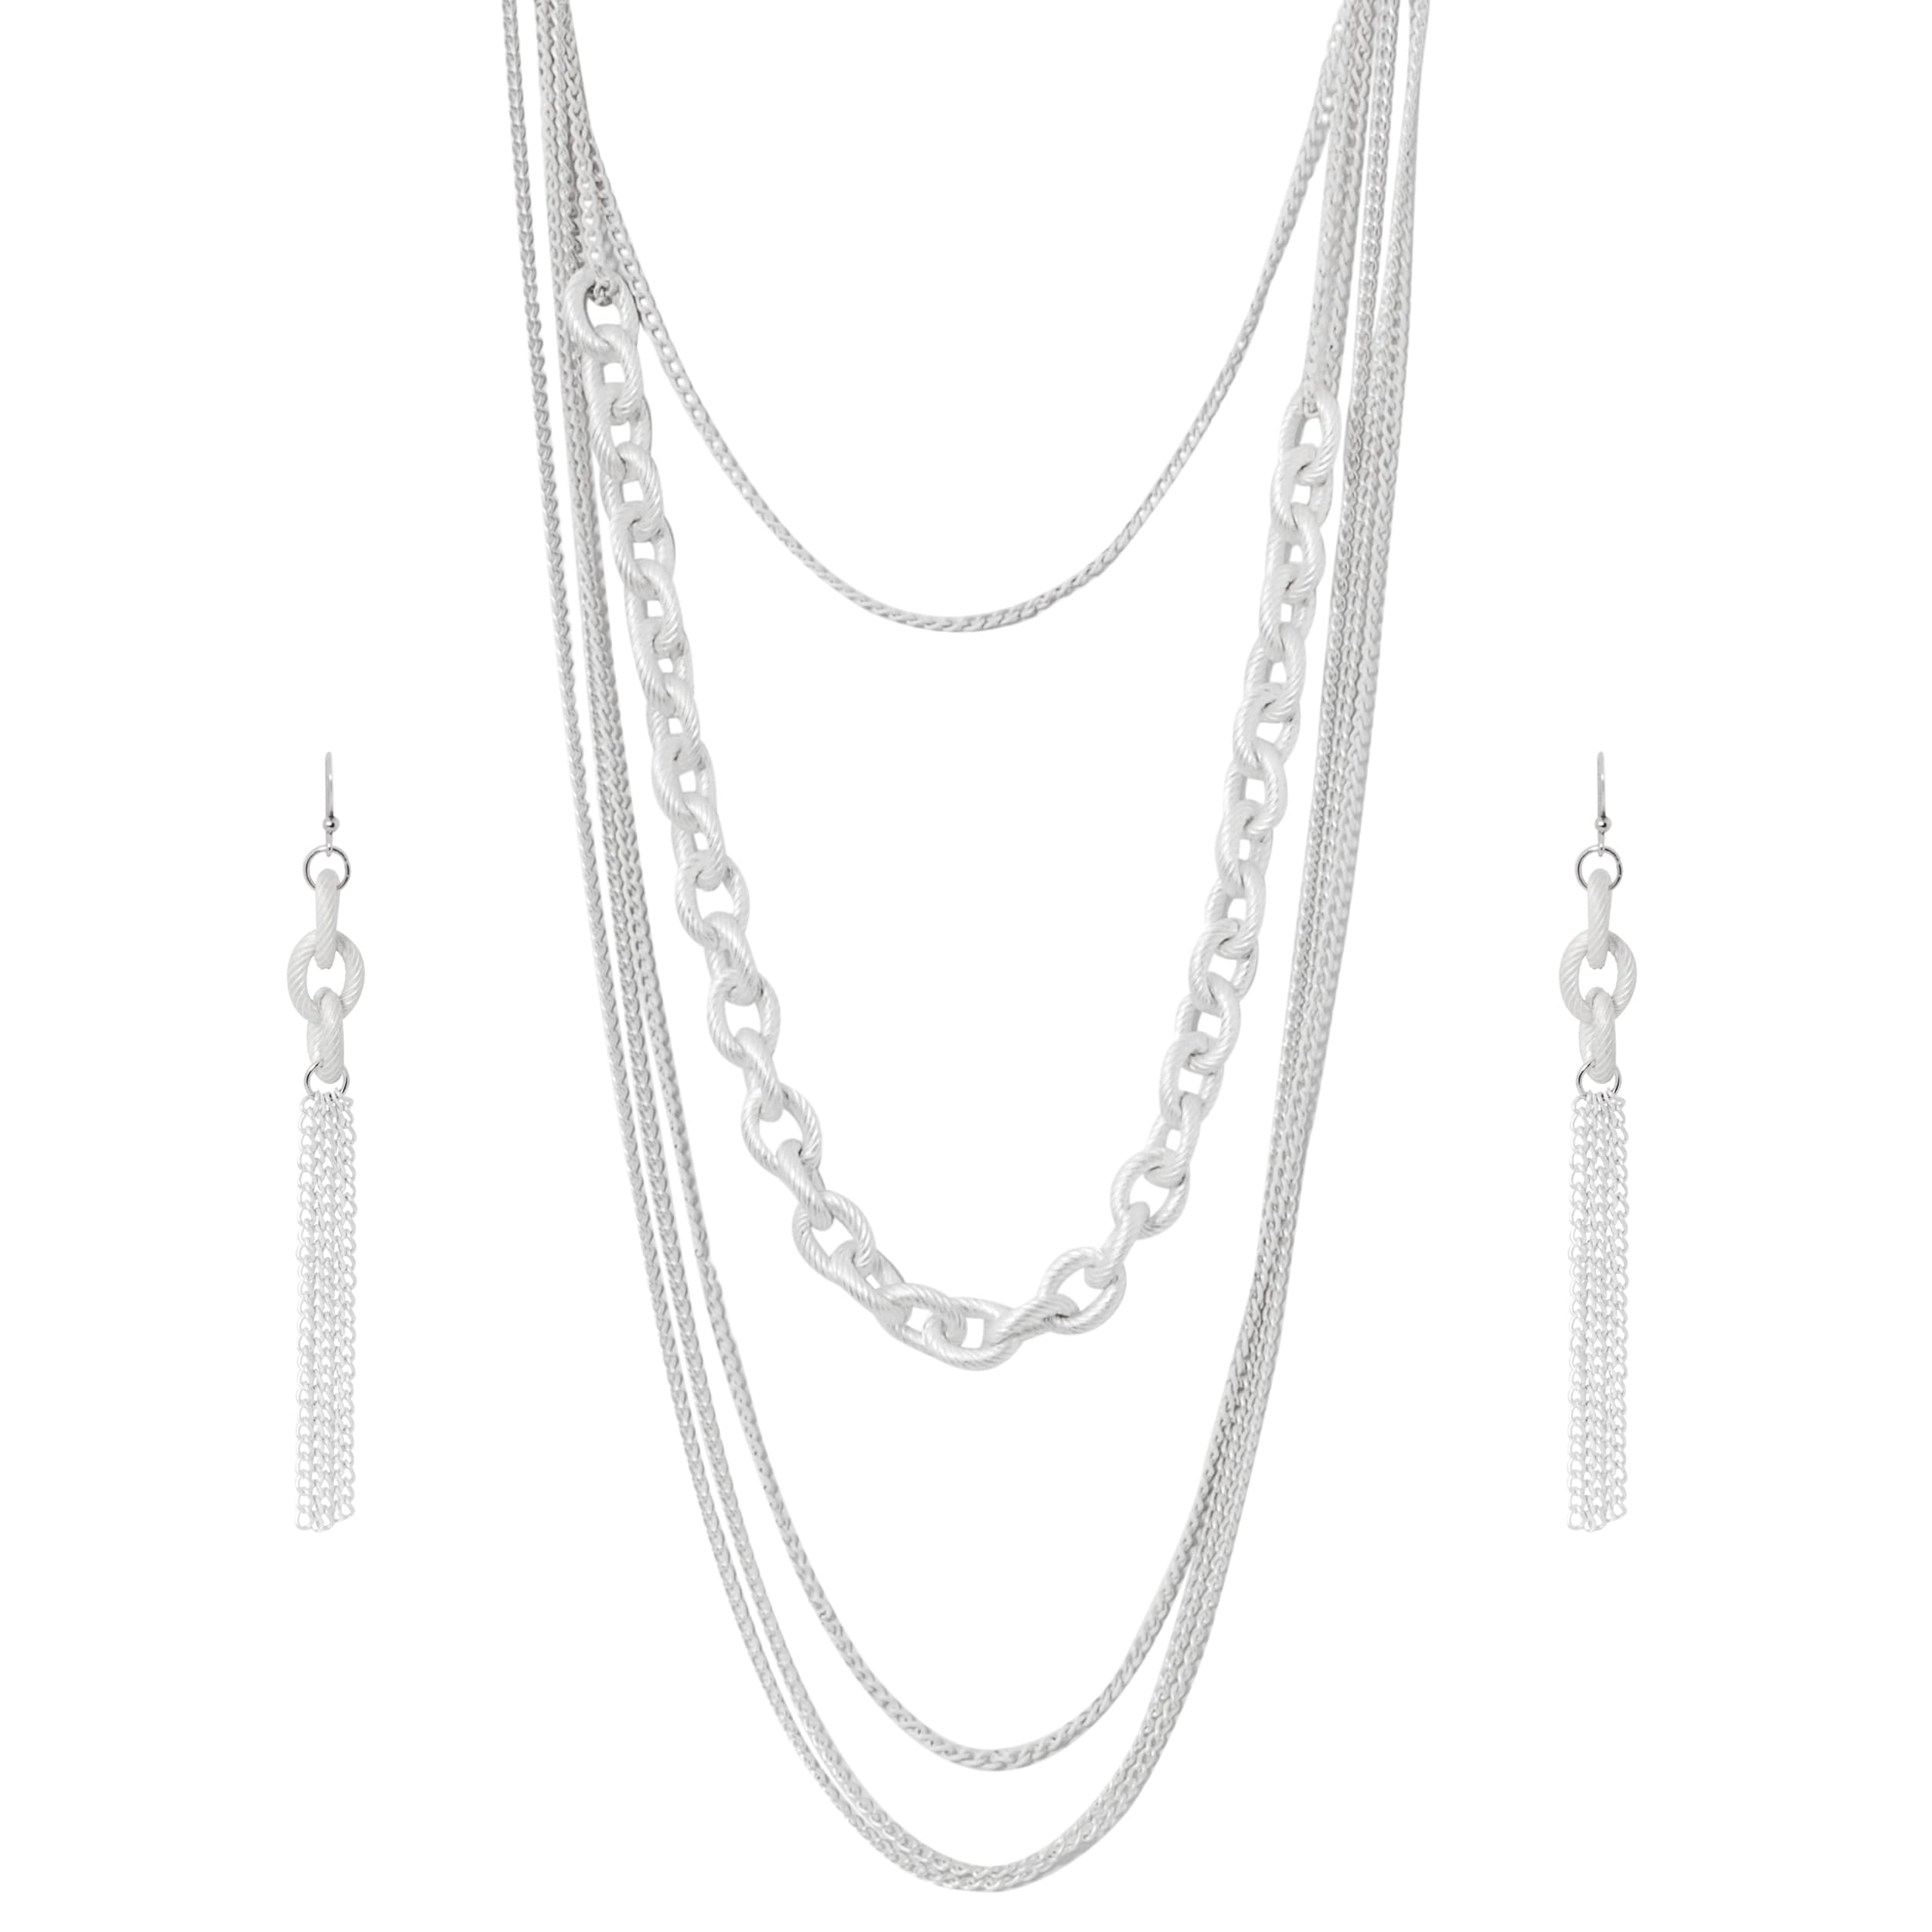 Journee Collection Cream Multi-chain Necklace Earring Set